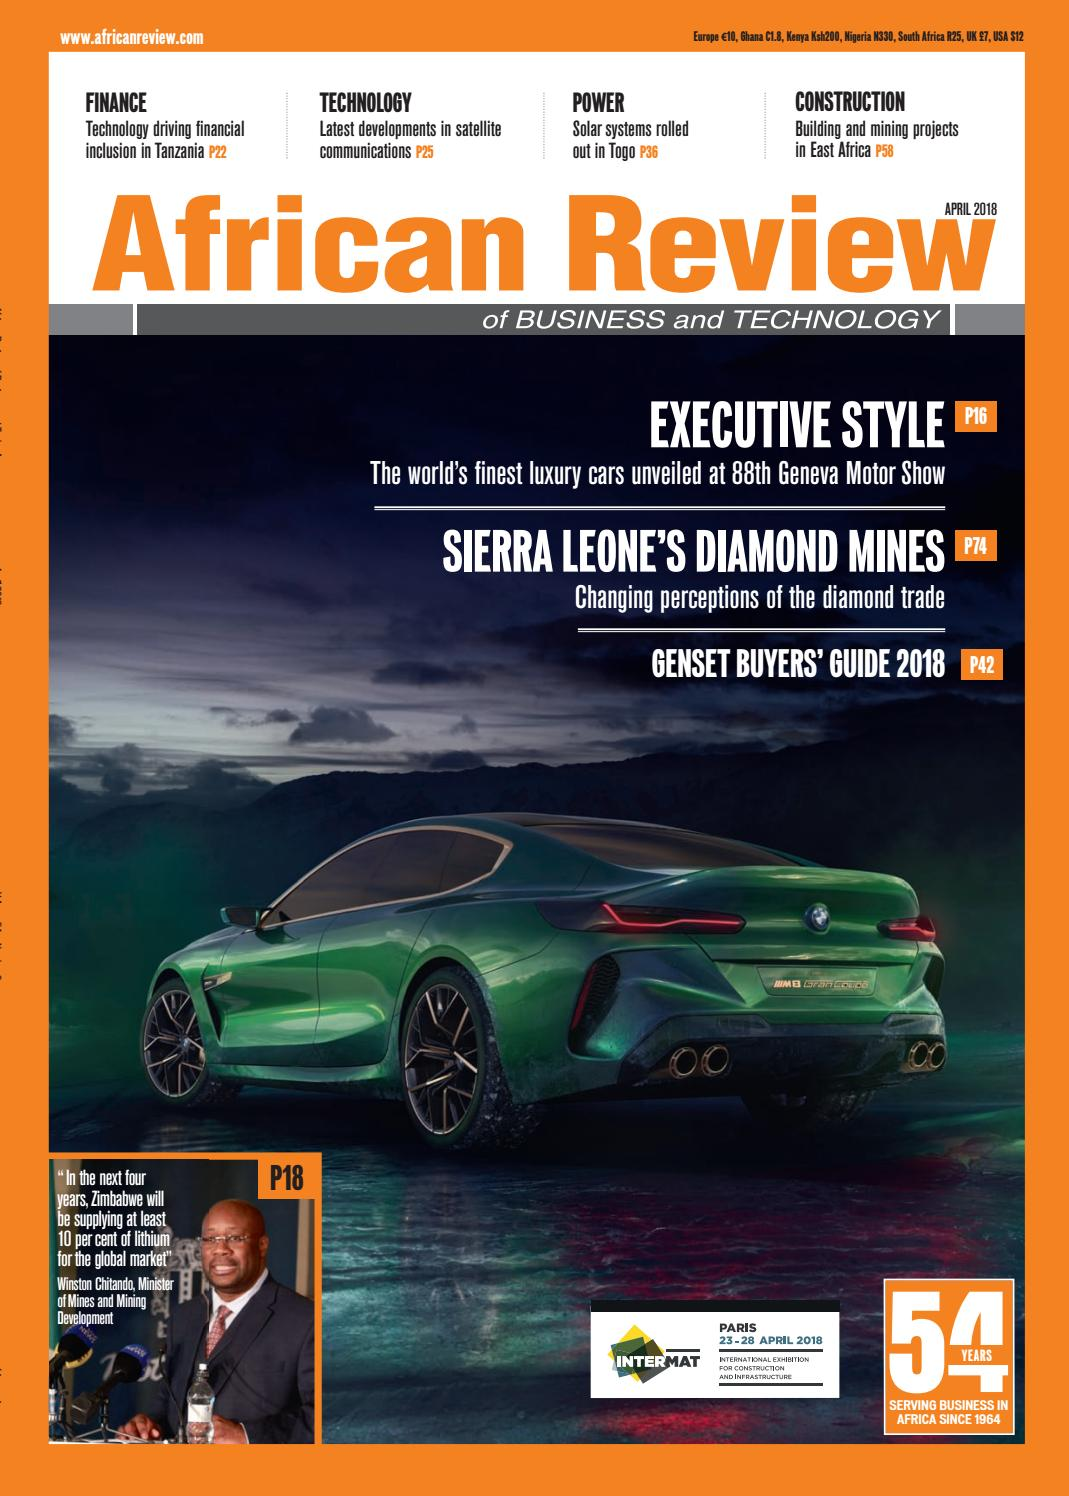 African Review April 2018 By Alain Charles Publishing Issuu Circuit Board Recycling Equipmentoffer Copper Wire Machine